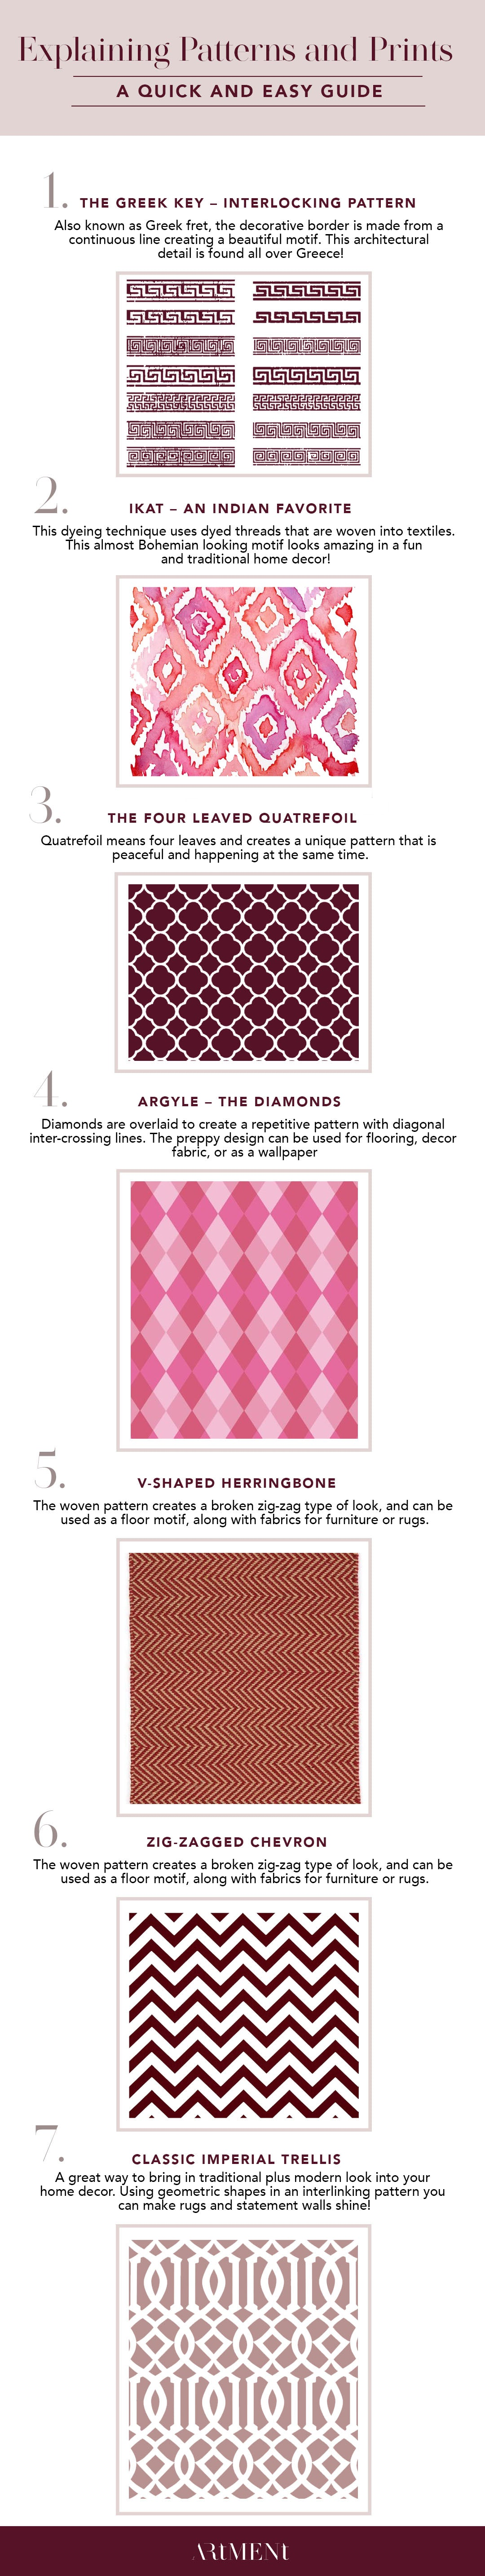 Home Decor Patterns to Use in Your Home!